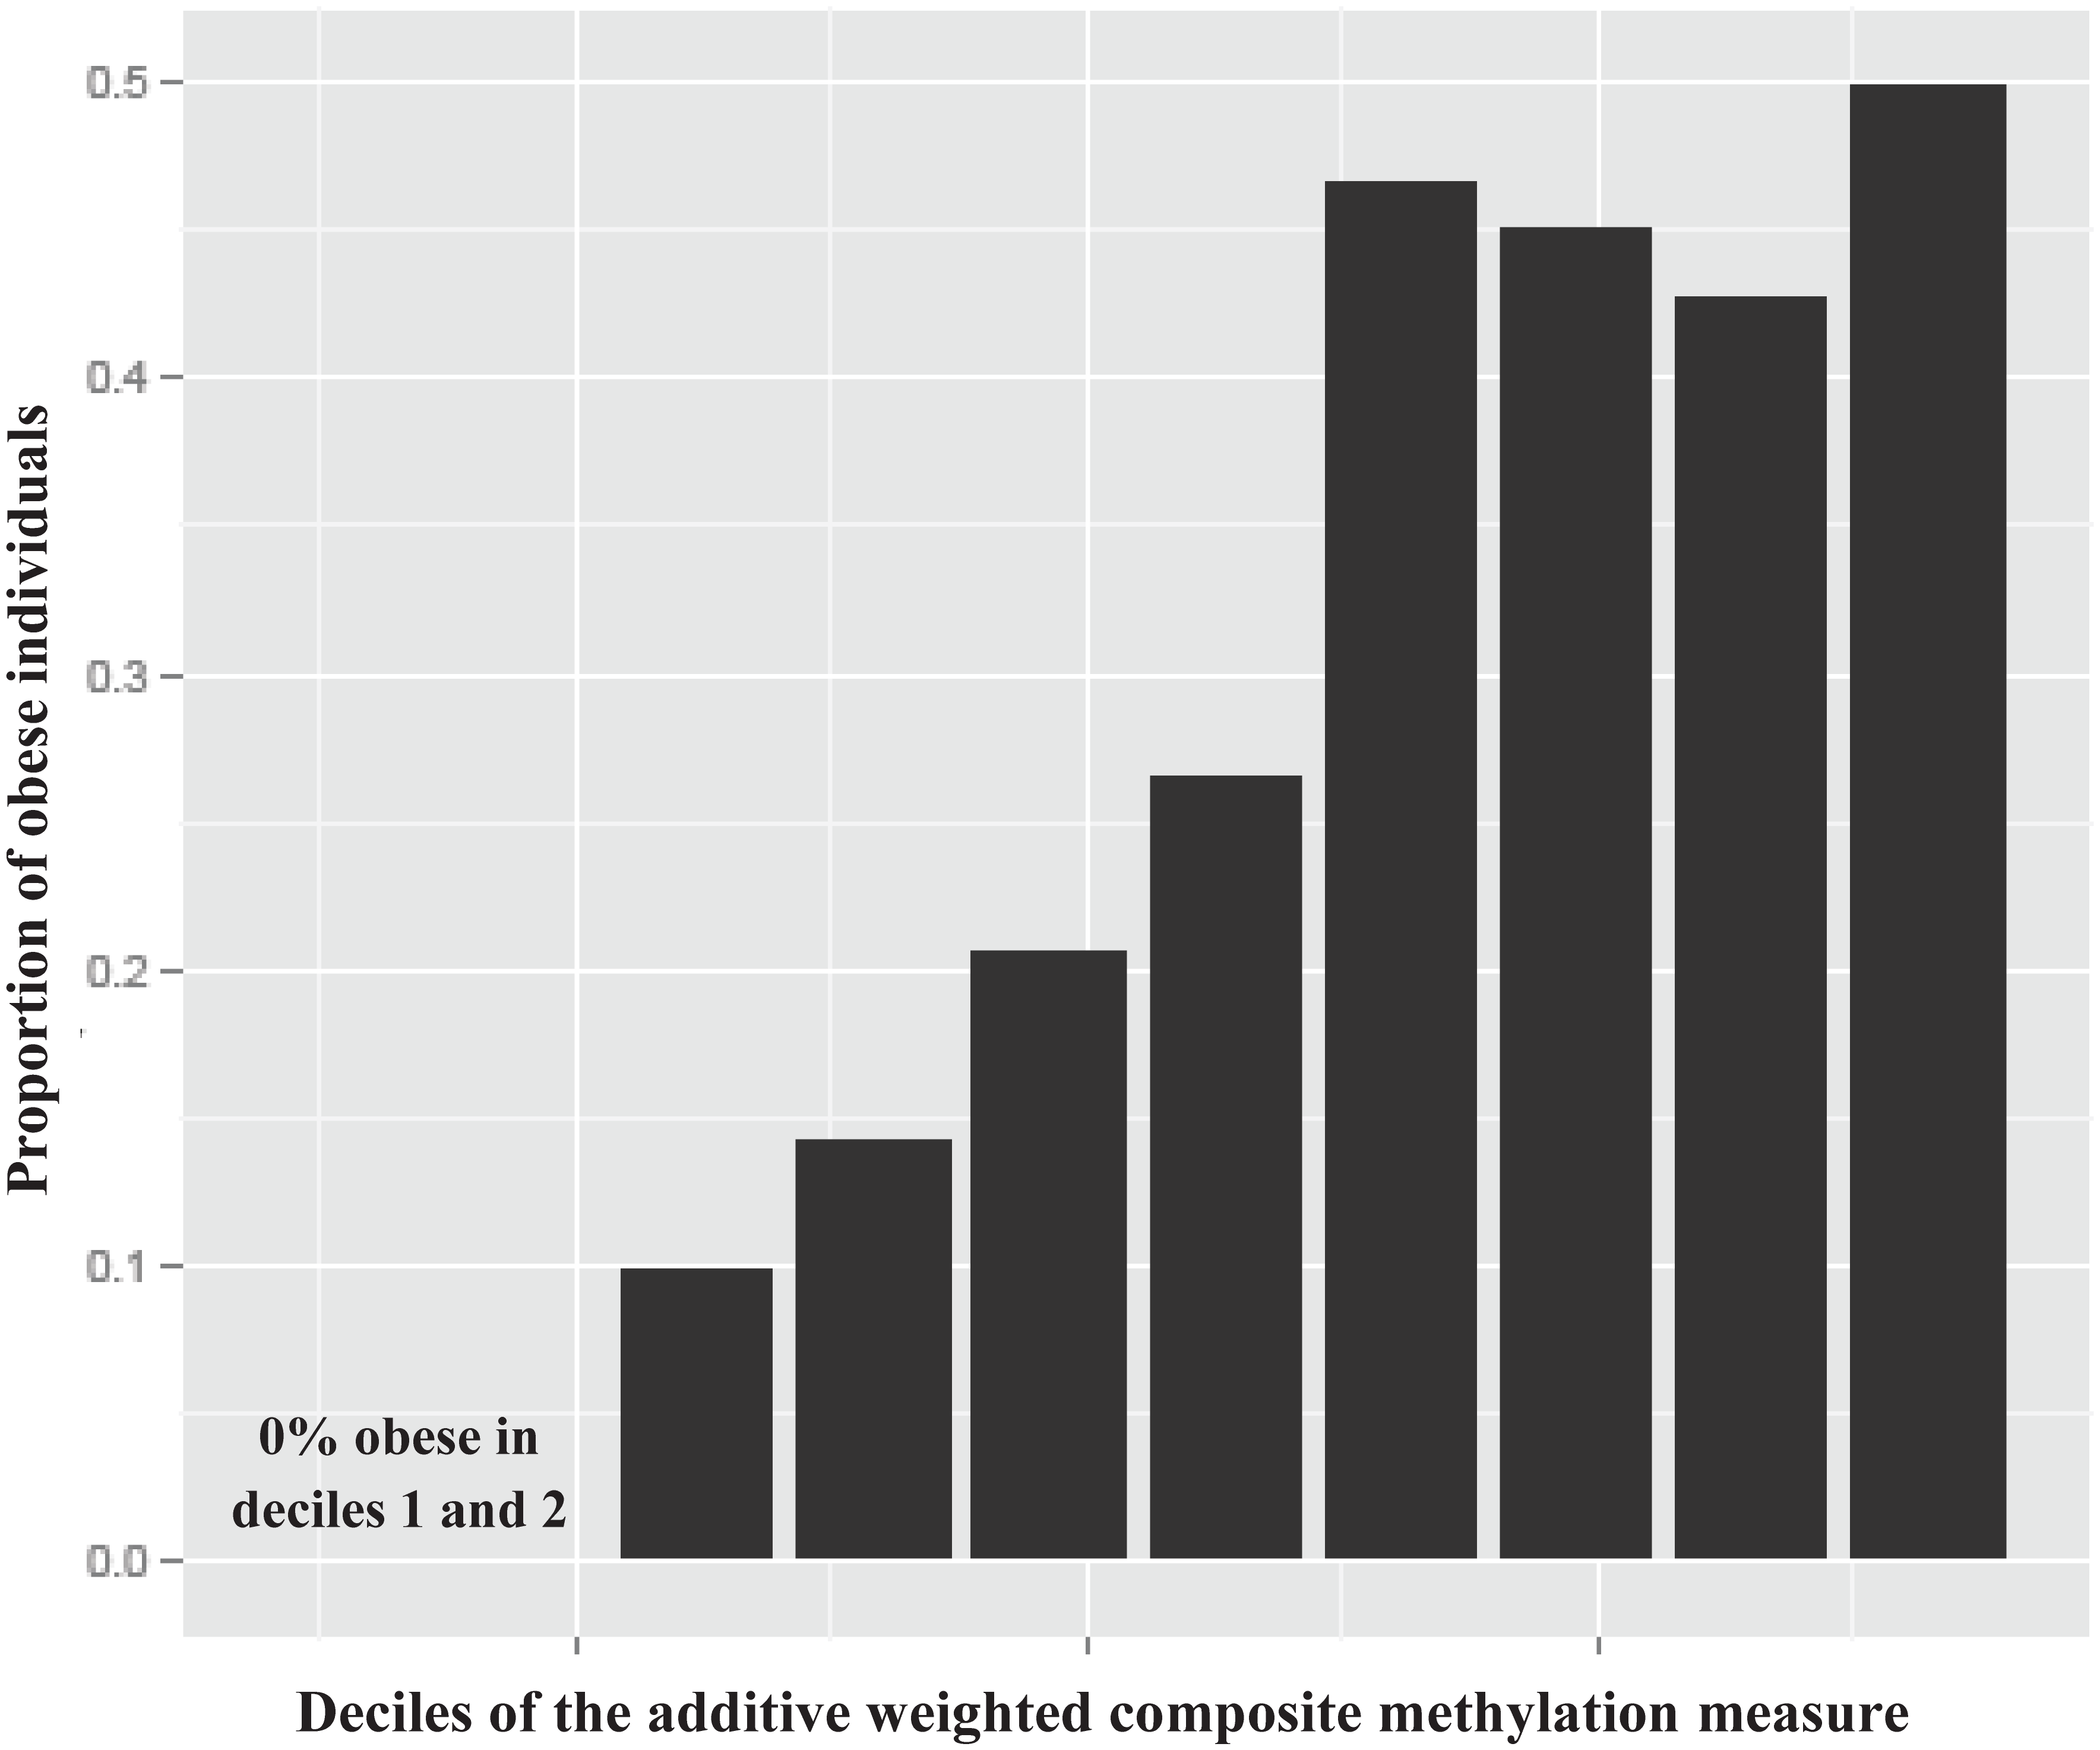 Histogram of the proportion of obese individuals (BMI ≥ 30 kg/m<sup>2</sup>) in the PIVUS cohort across deciles of the additive weighted composite methylation measure of the 77 nonredundant replicated CpGs ( <i>r</i>  &lt; 0.7) from the BMI epigenome-wide association study.